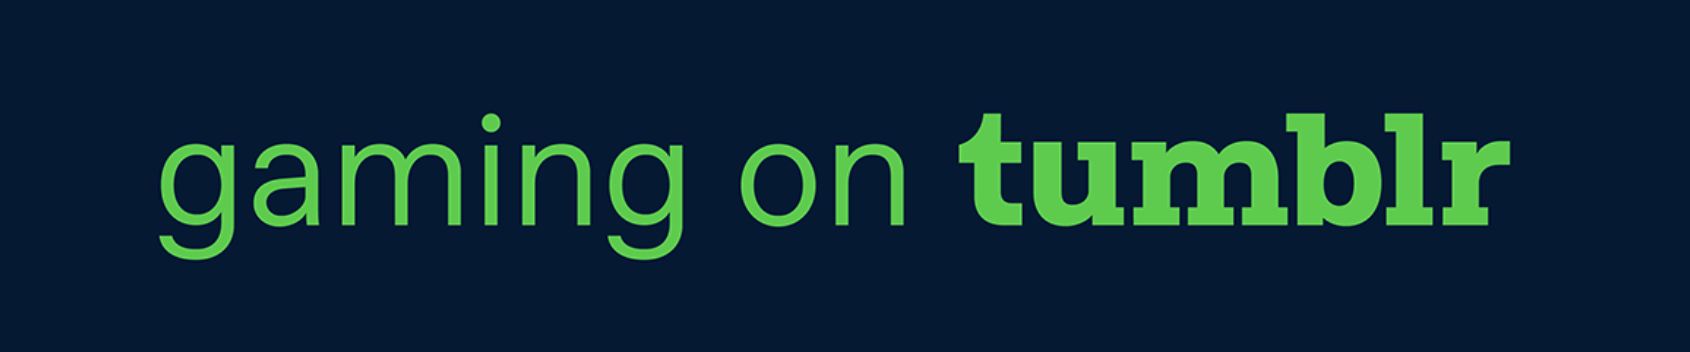 tumblr gaming logo.png